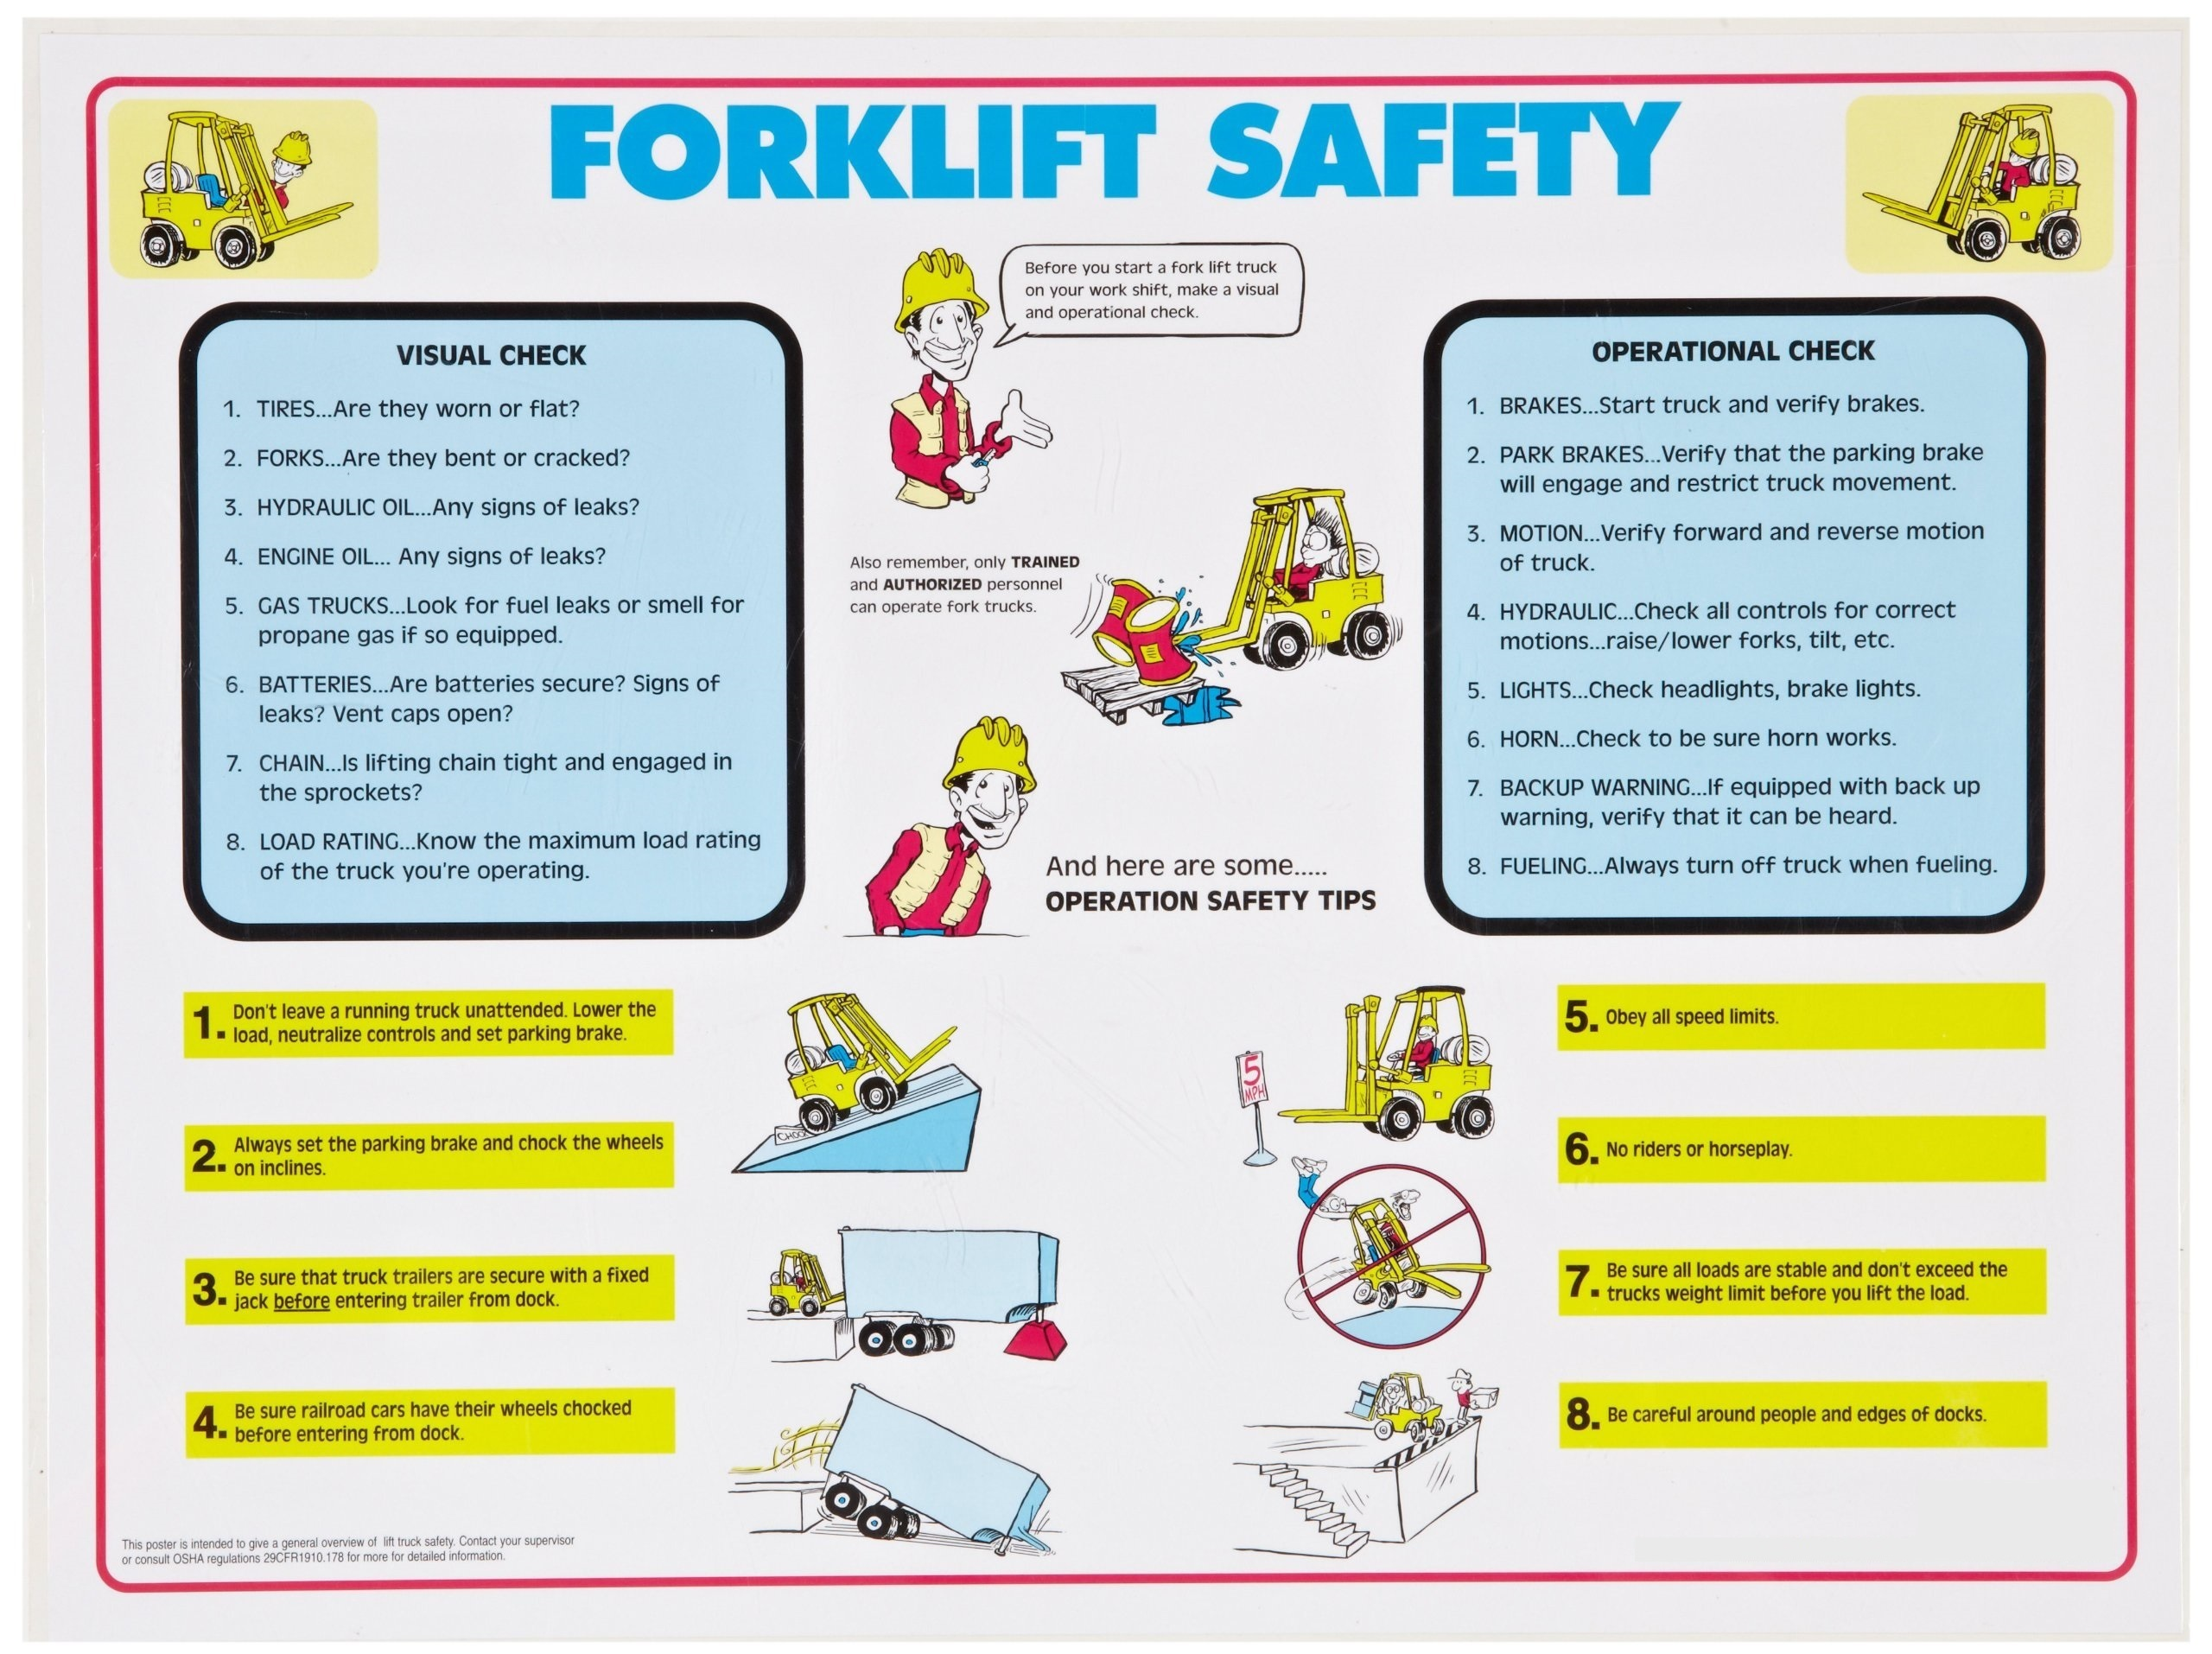 Statewide Forklift safety checklist